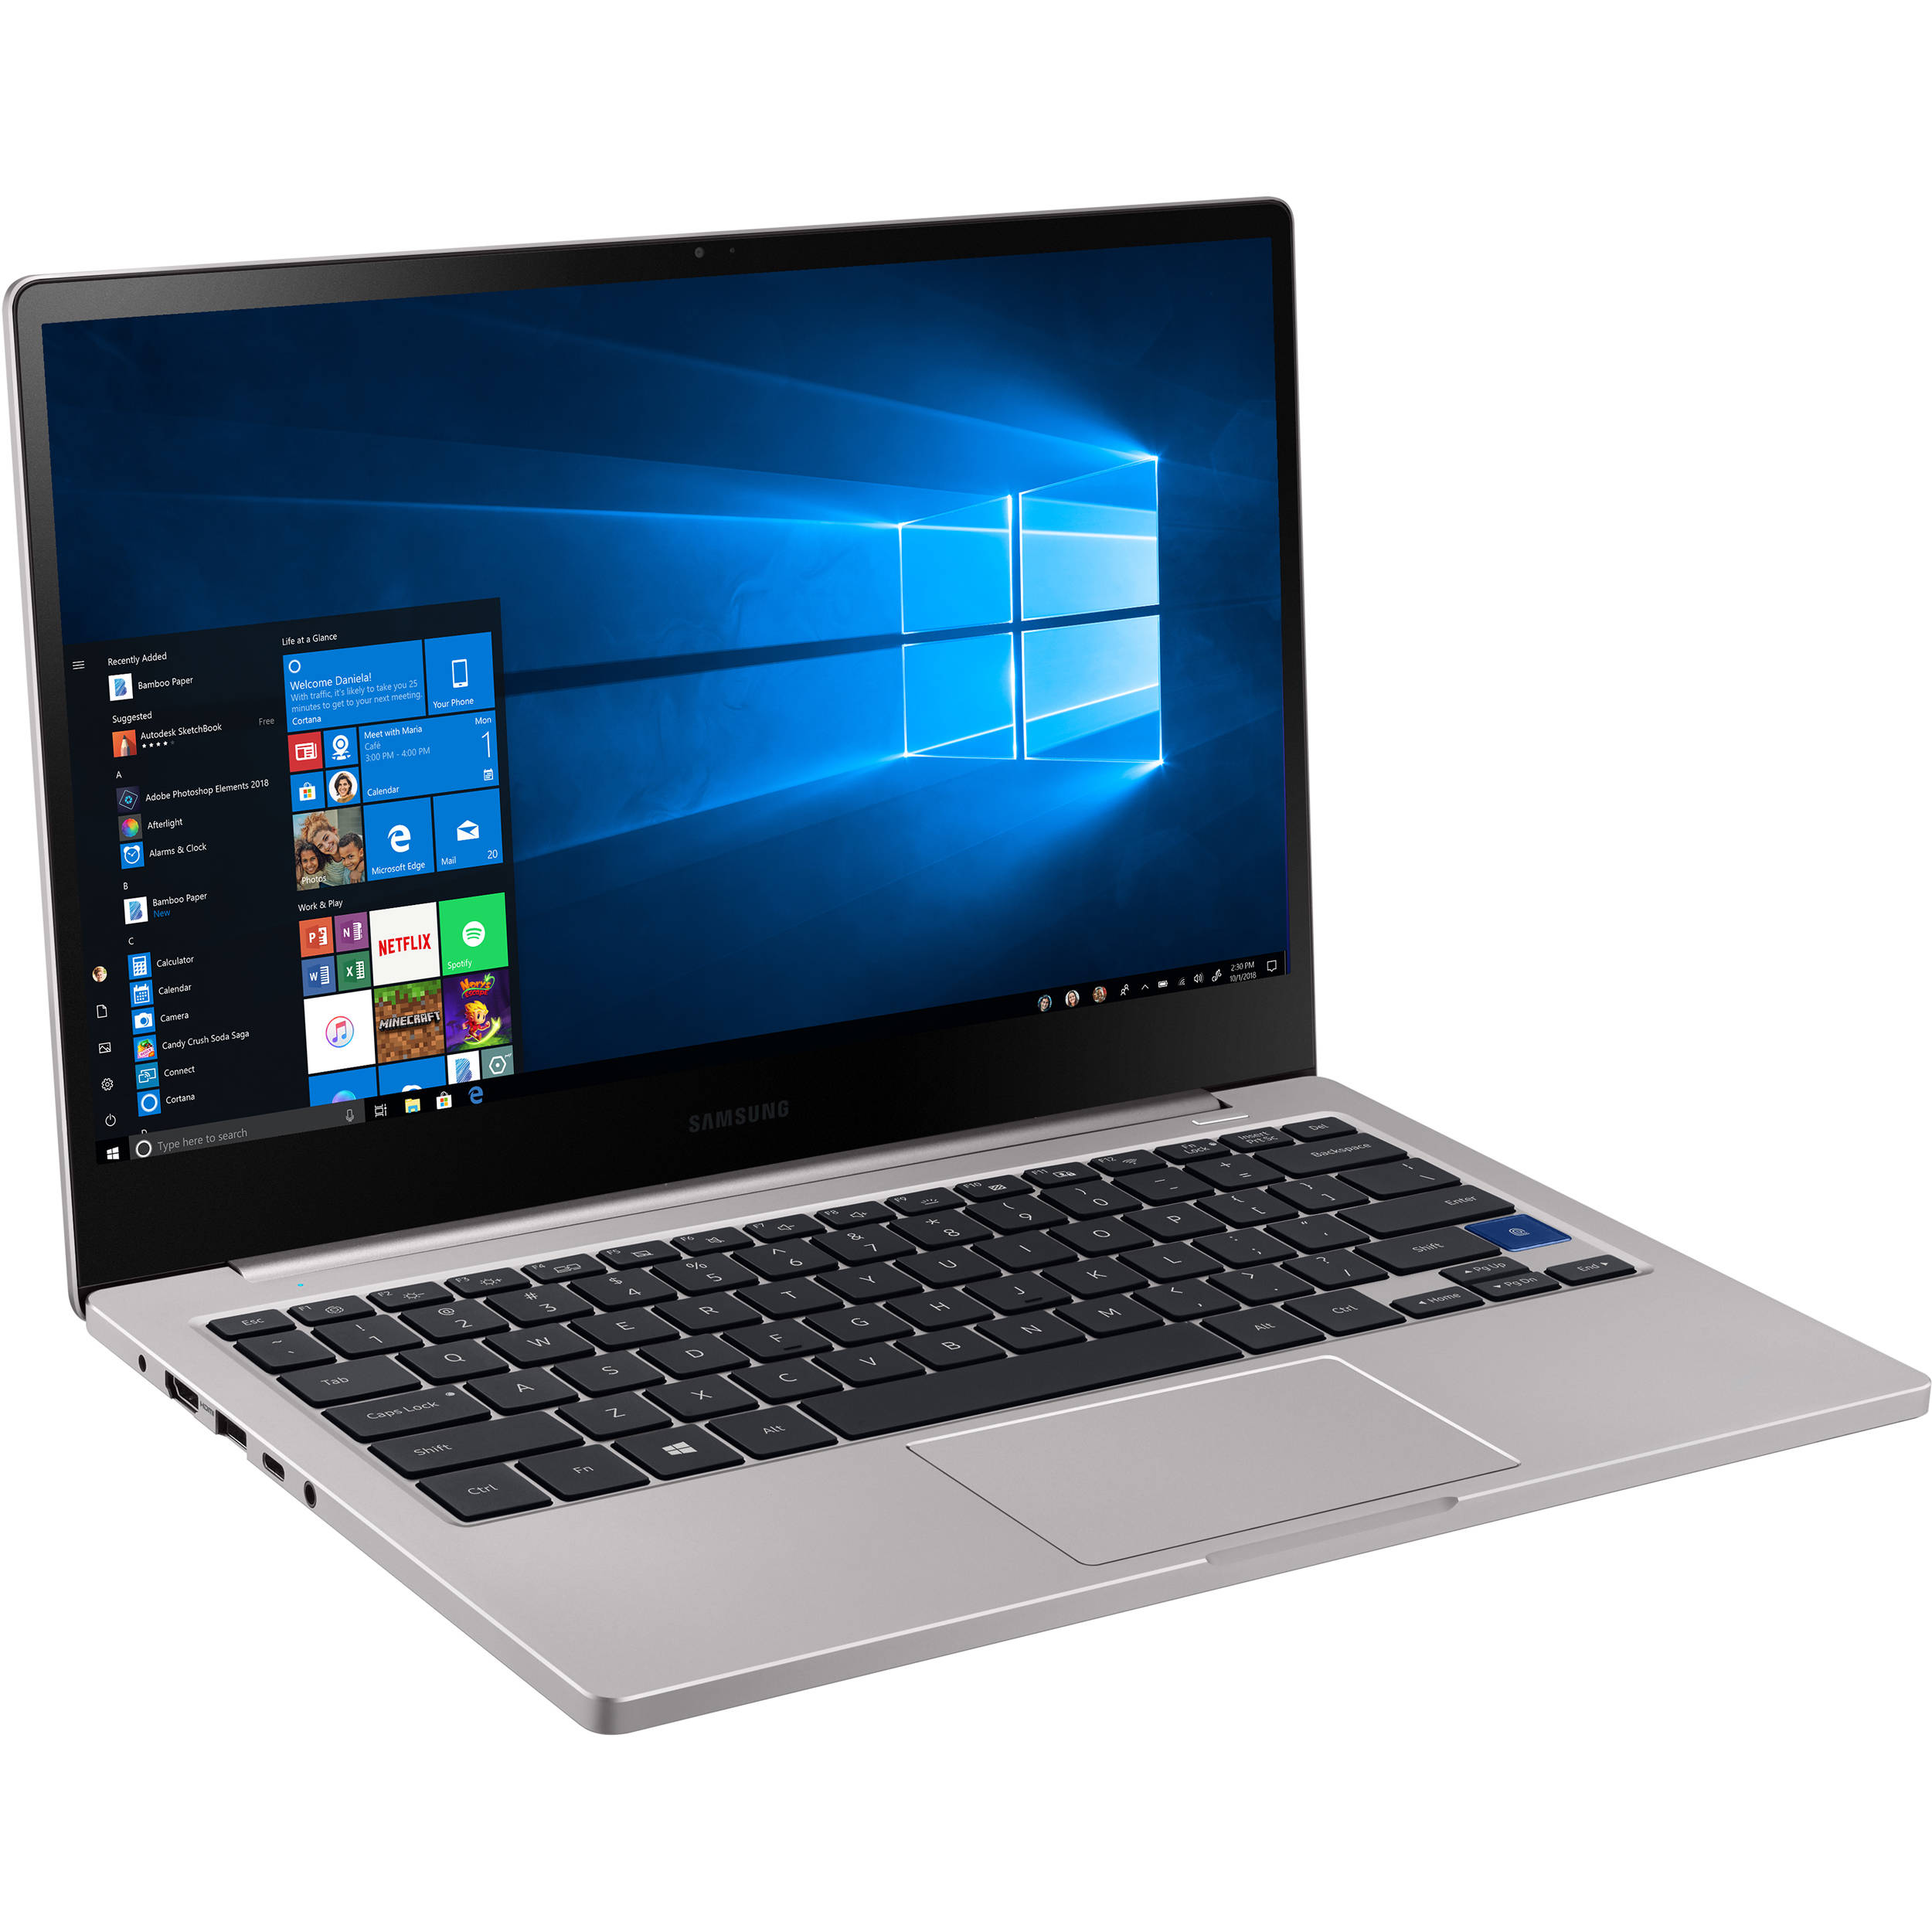 Samsung i7-8565U/ 16GB/ 512SSD/ UHD-620/ Windows 10 Home/ 13 3